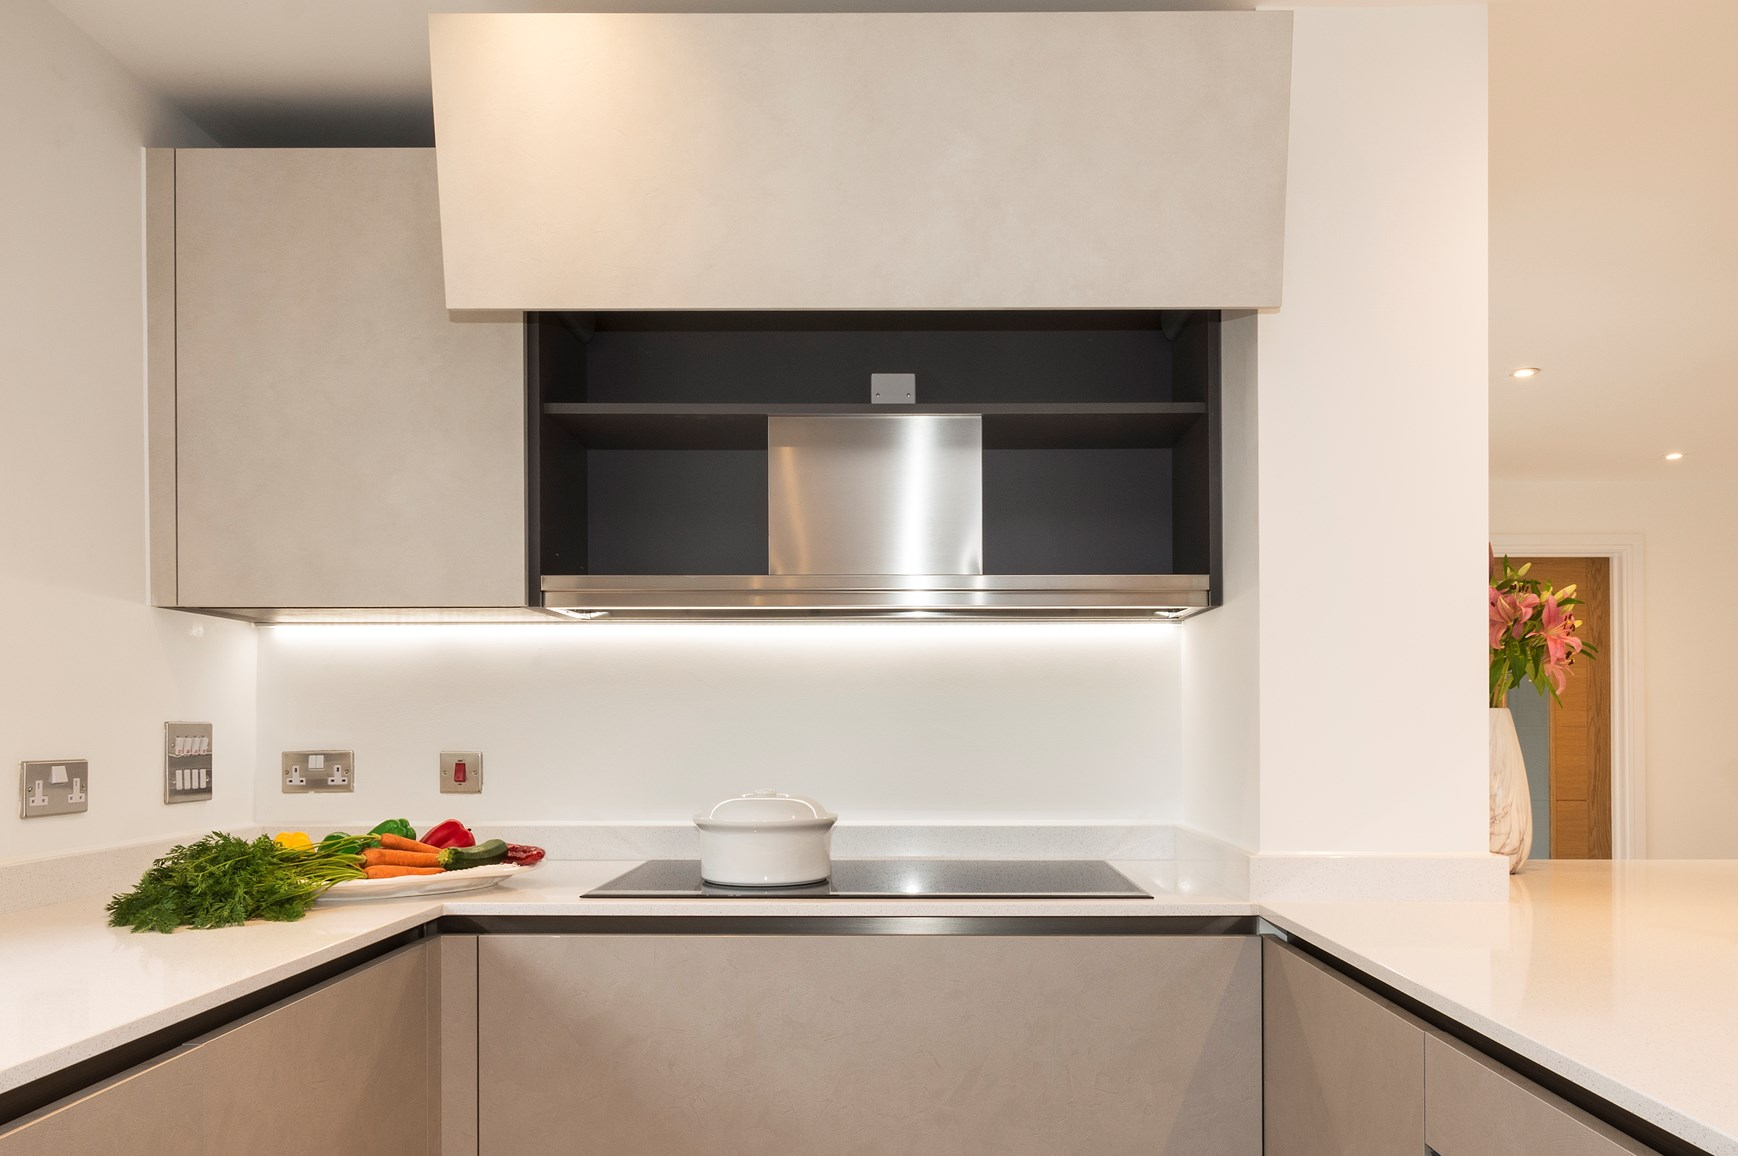 Wellspring Place Kitchen A Hi-Res 07.jpg